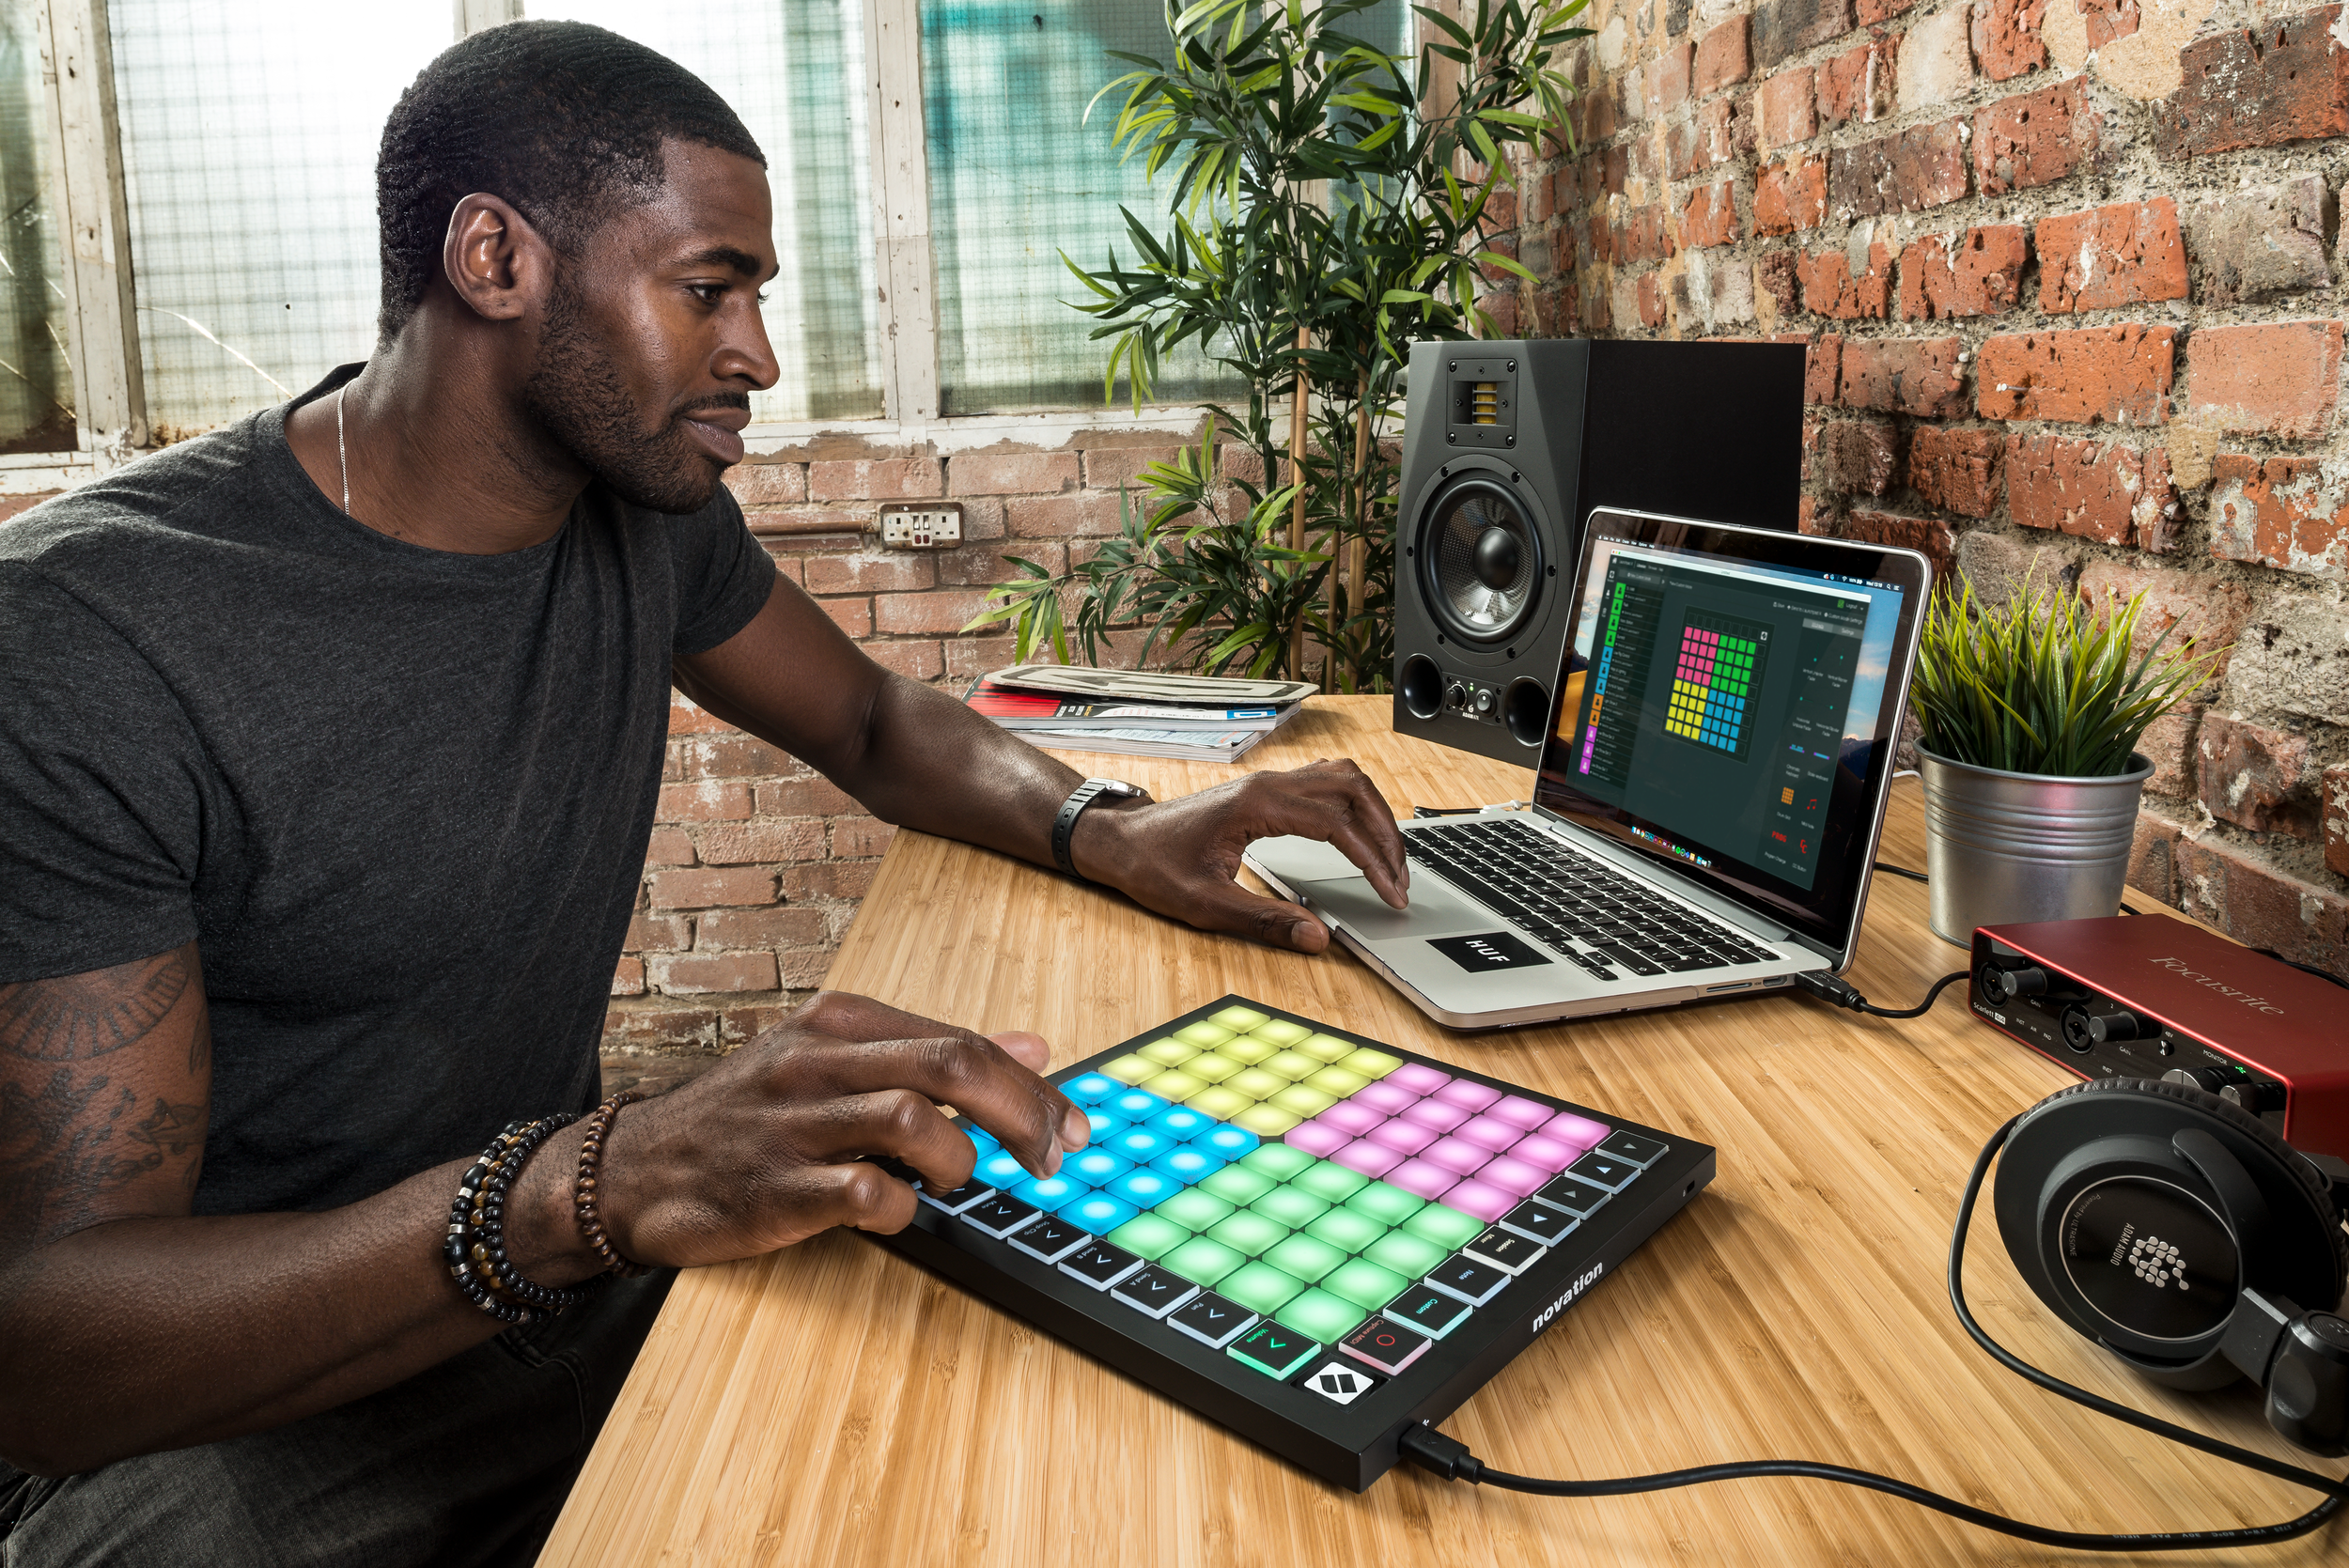 Launchpad-X_Lifestyle_3.png